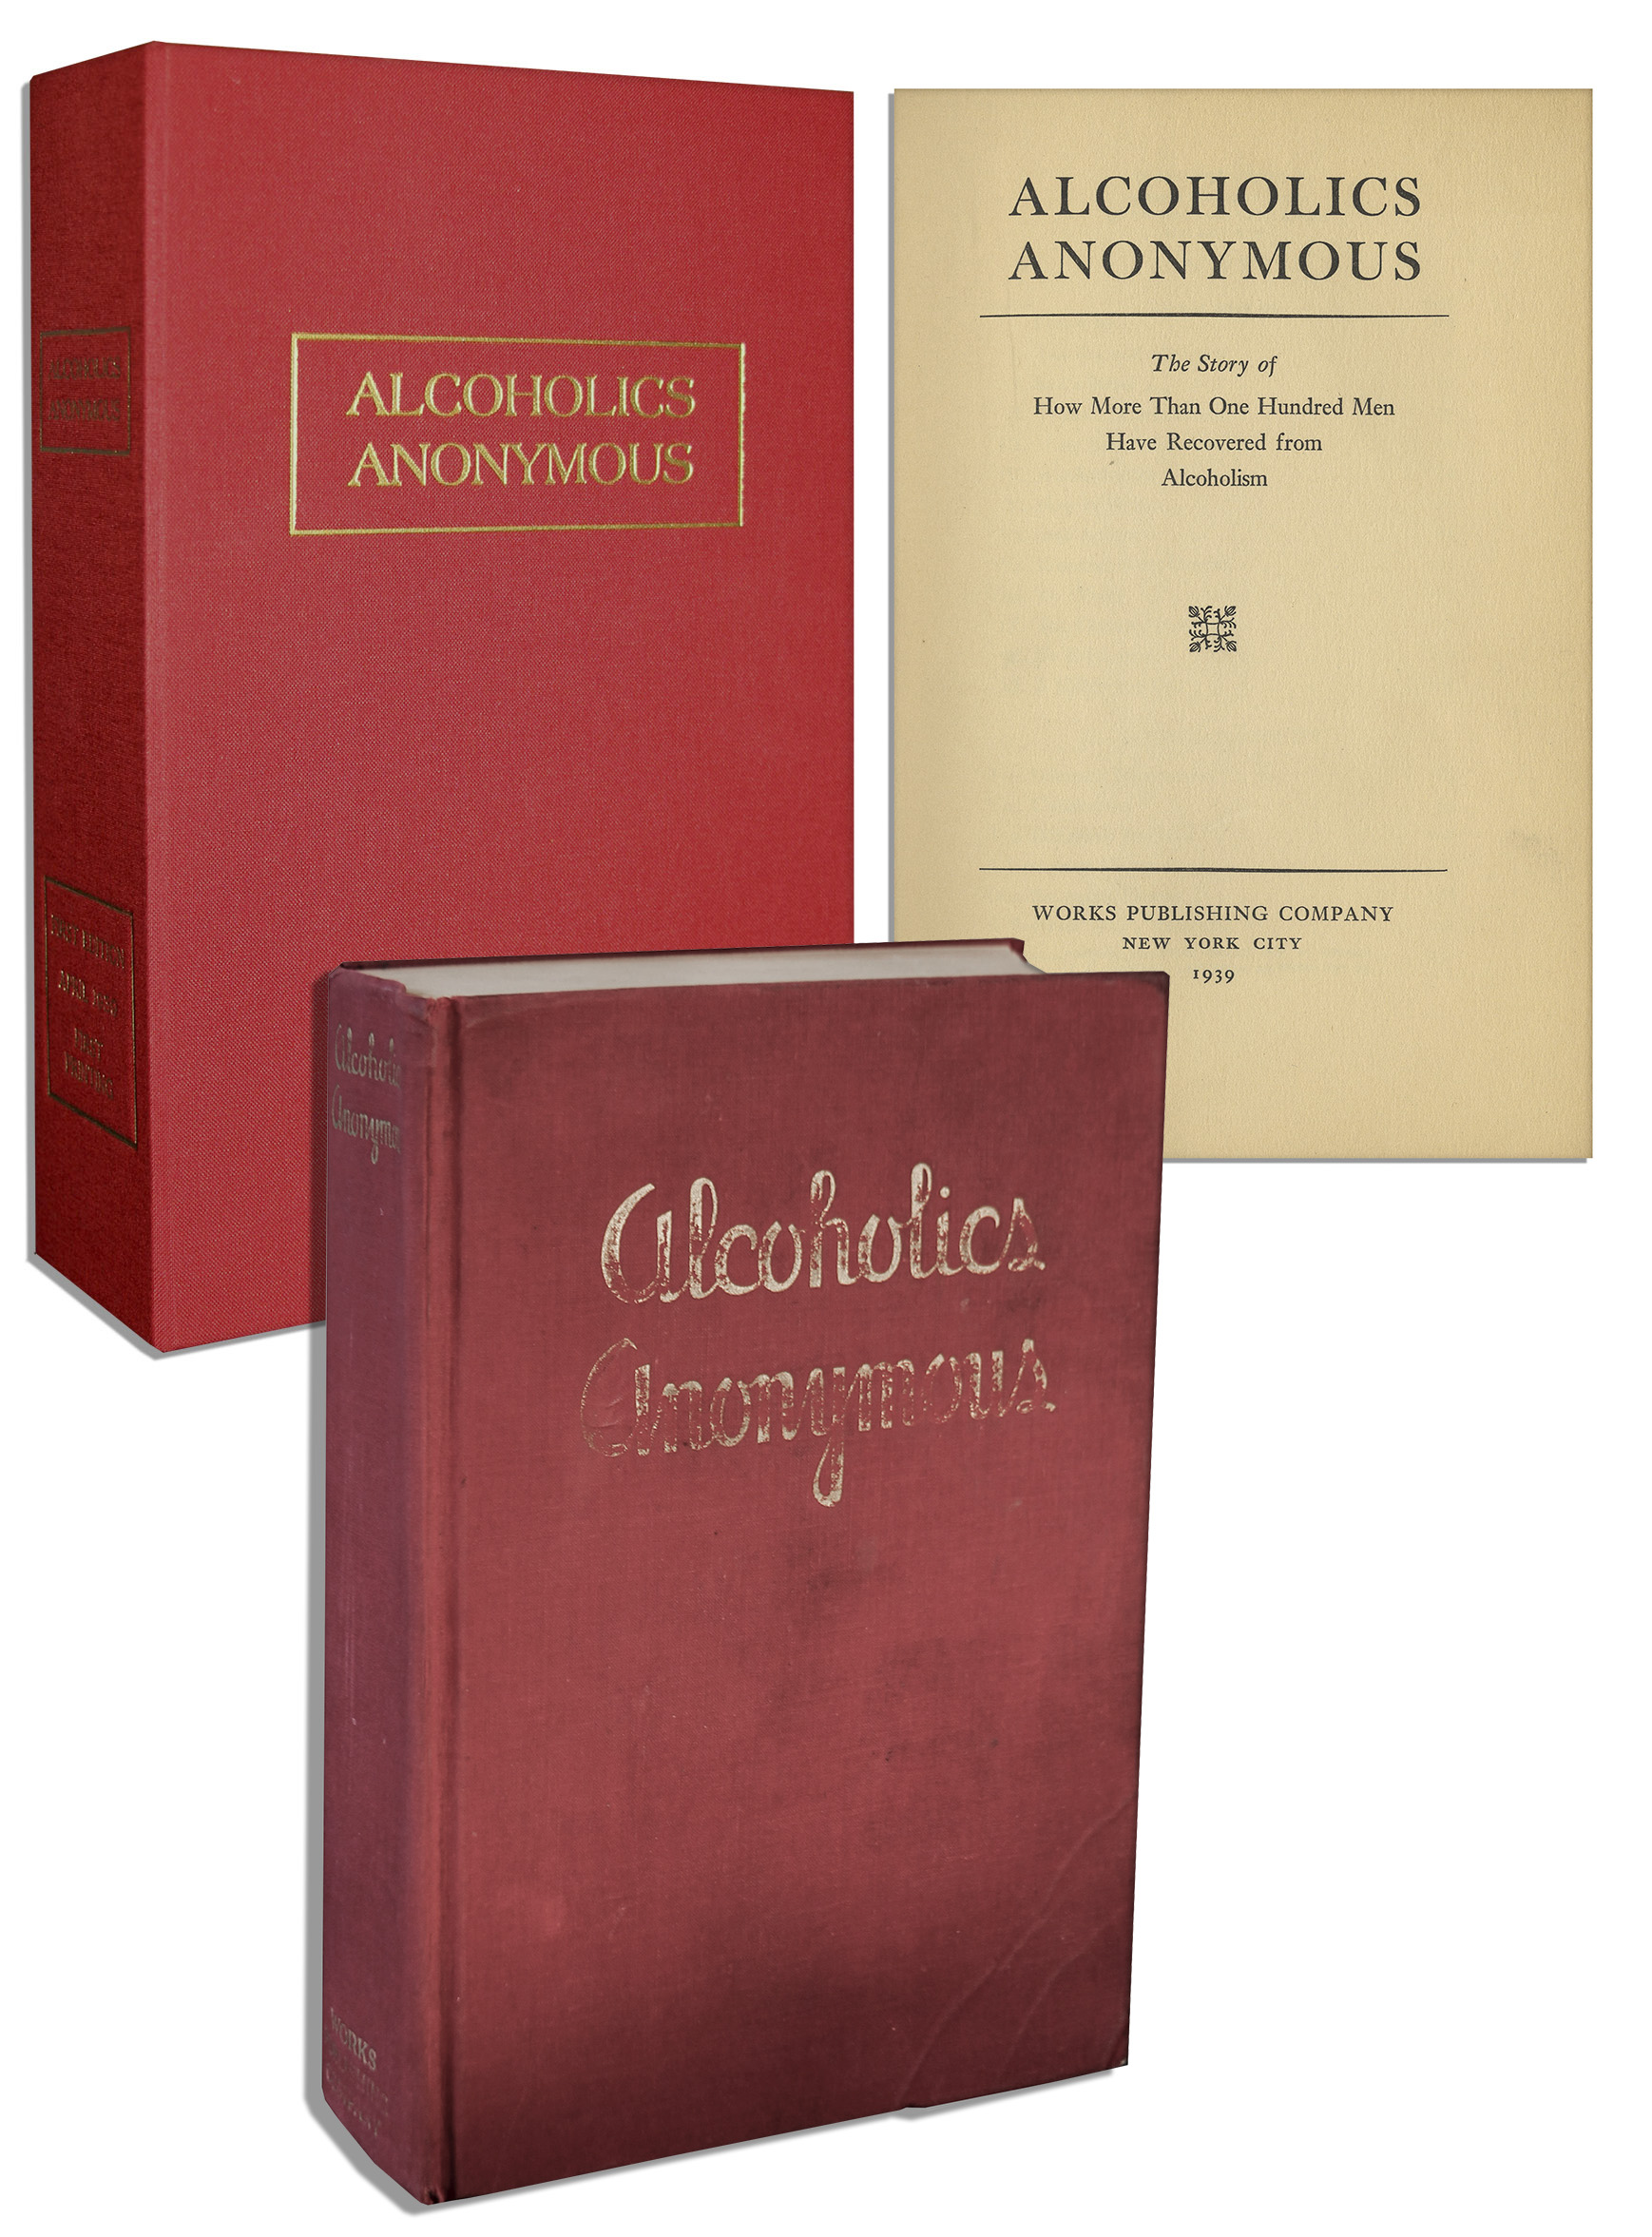 Alcoholics Anonymous First Edition Lot #545: ''Alcoholics Anonymous'' First Edition, First Printing of the Revolutionary ''Big Book'' From Which the Substance Treatment Program Derives Its Name -- One of Only About 1,900 in Existence